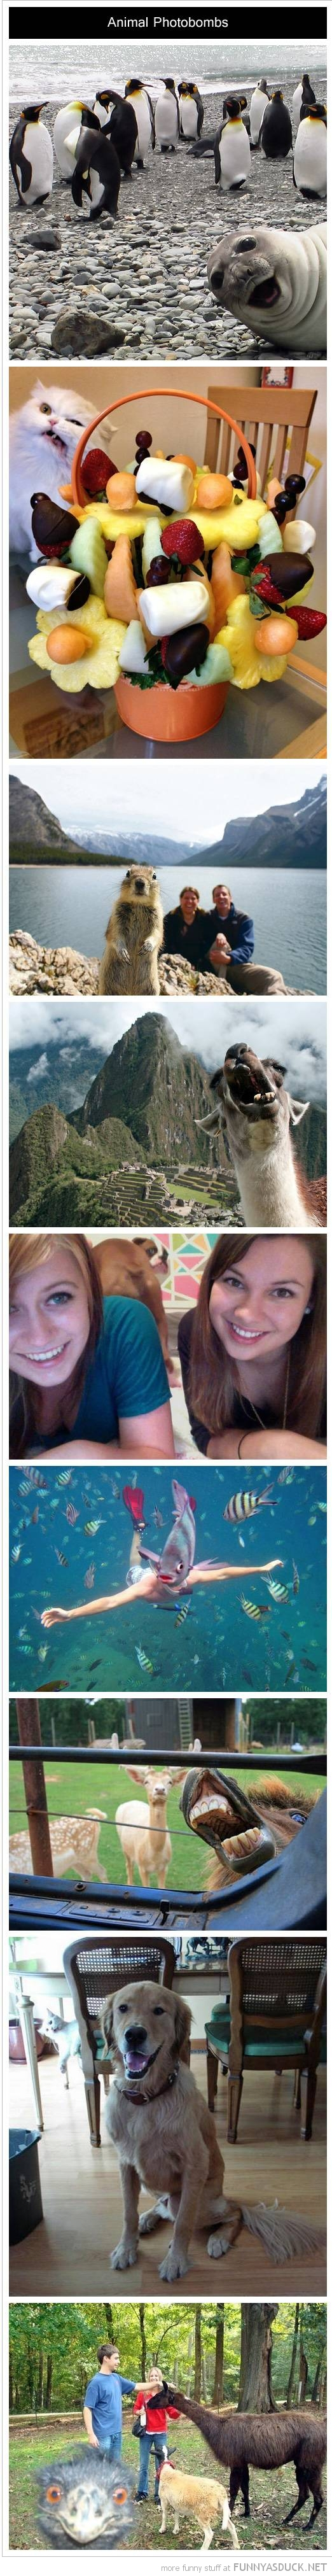 animal photobomb compilation funny pics pictures pic picture image photo images photos lol